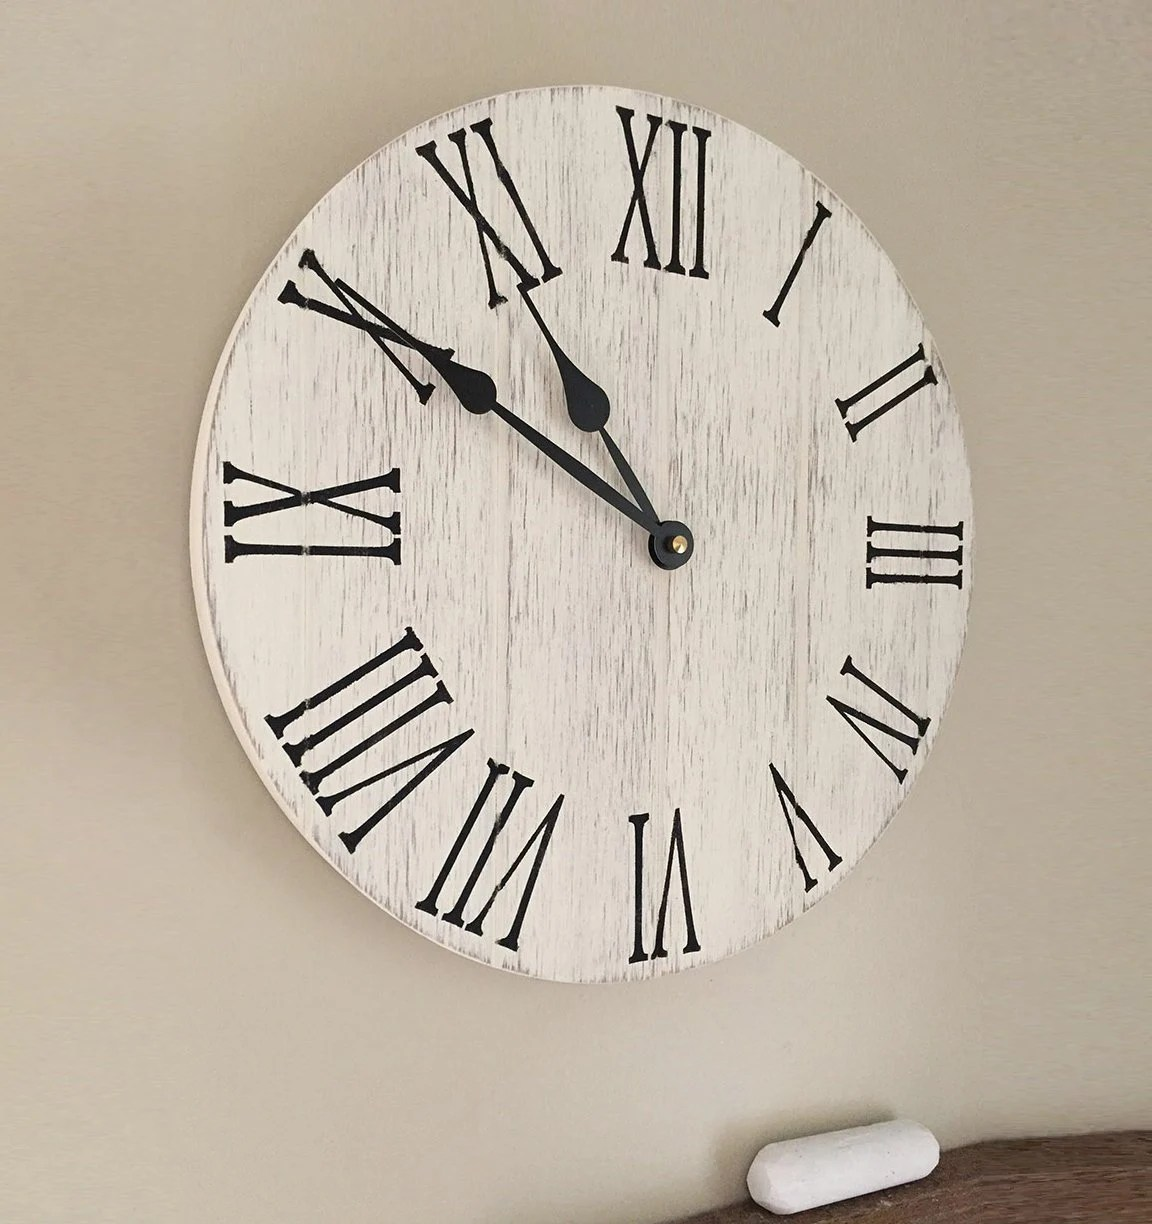 wooden kitchen clock heavy duty chairs farmhouse 12 wall rustic etsy image 0